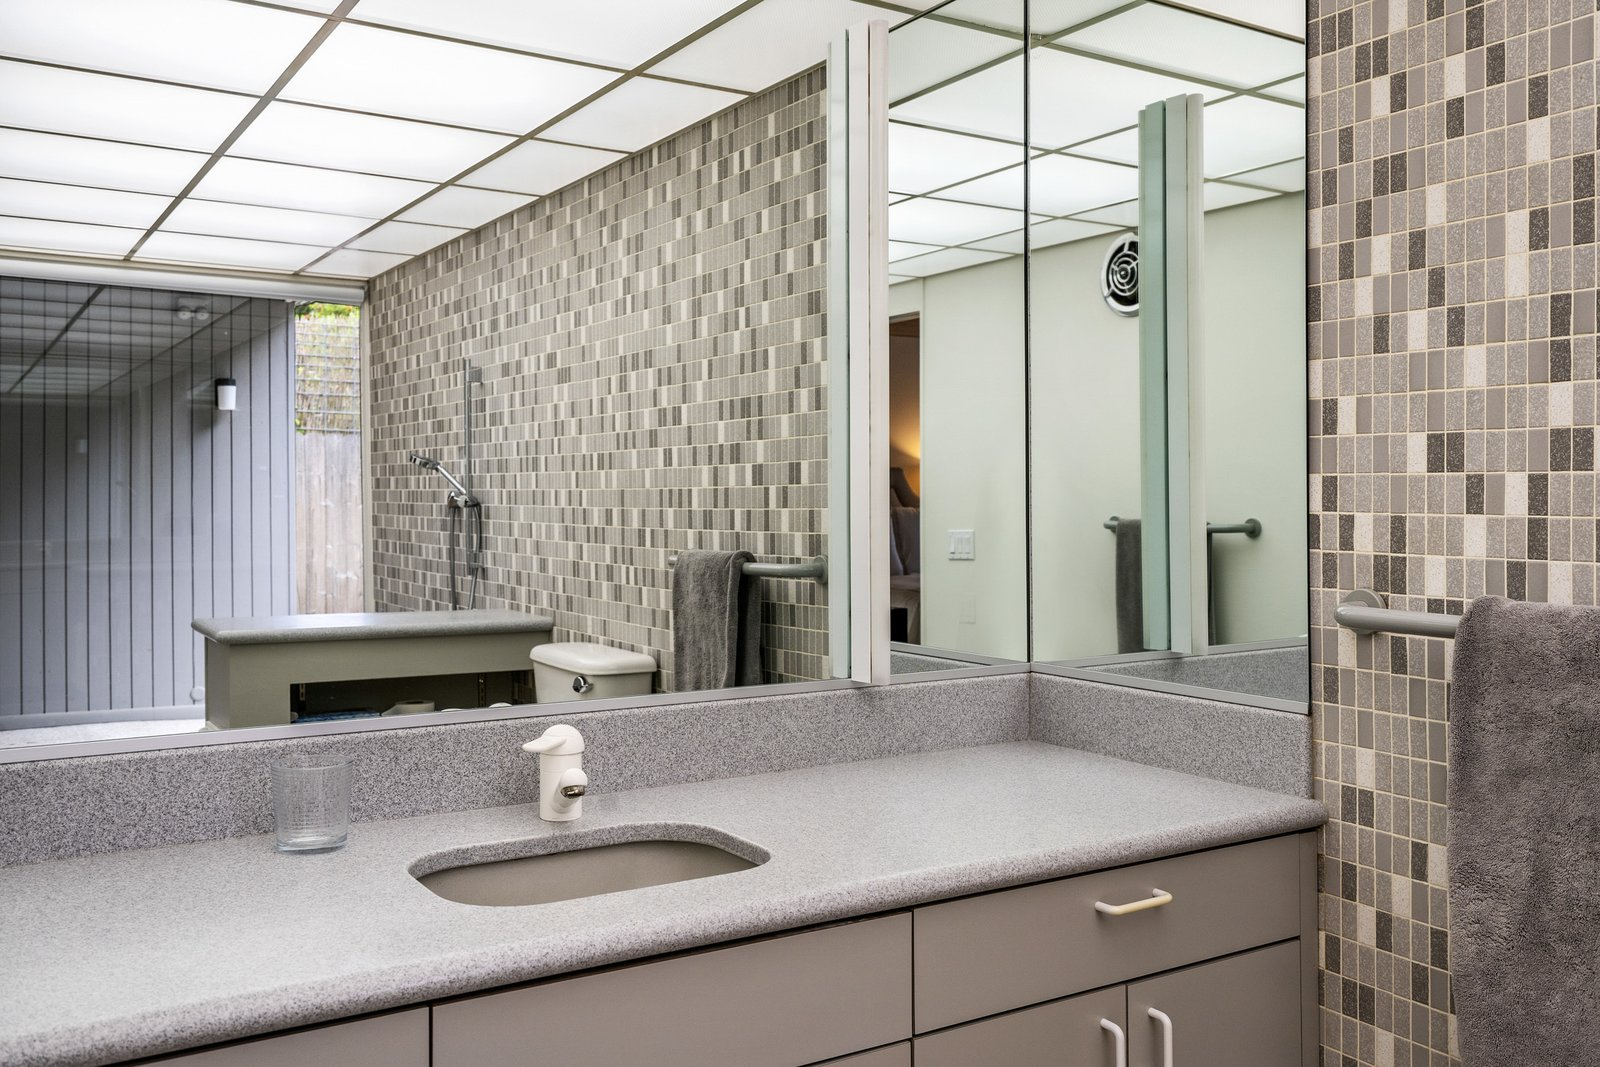 Bath Room, Wall Mount Sink, Ceramic Tile Wall, and Ceiling Lighting A look at the home's bathroom. Mirrors and a wall of glass make the space feel larger.  Photo 10 of 12 in A Case Study–Style Home in San Luis Obispo Lists for $870K